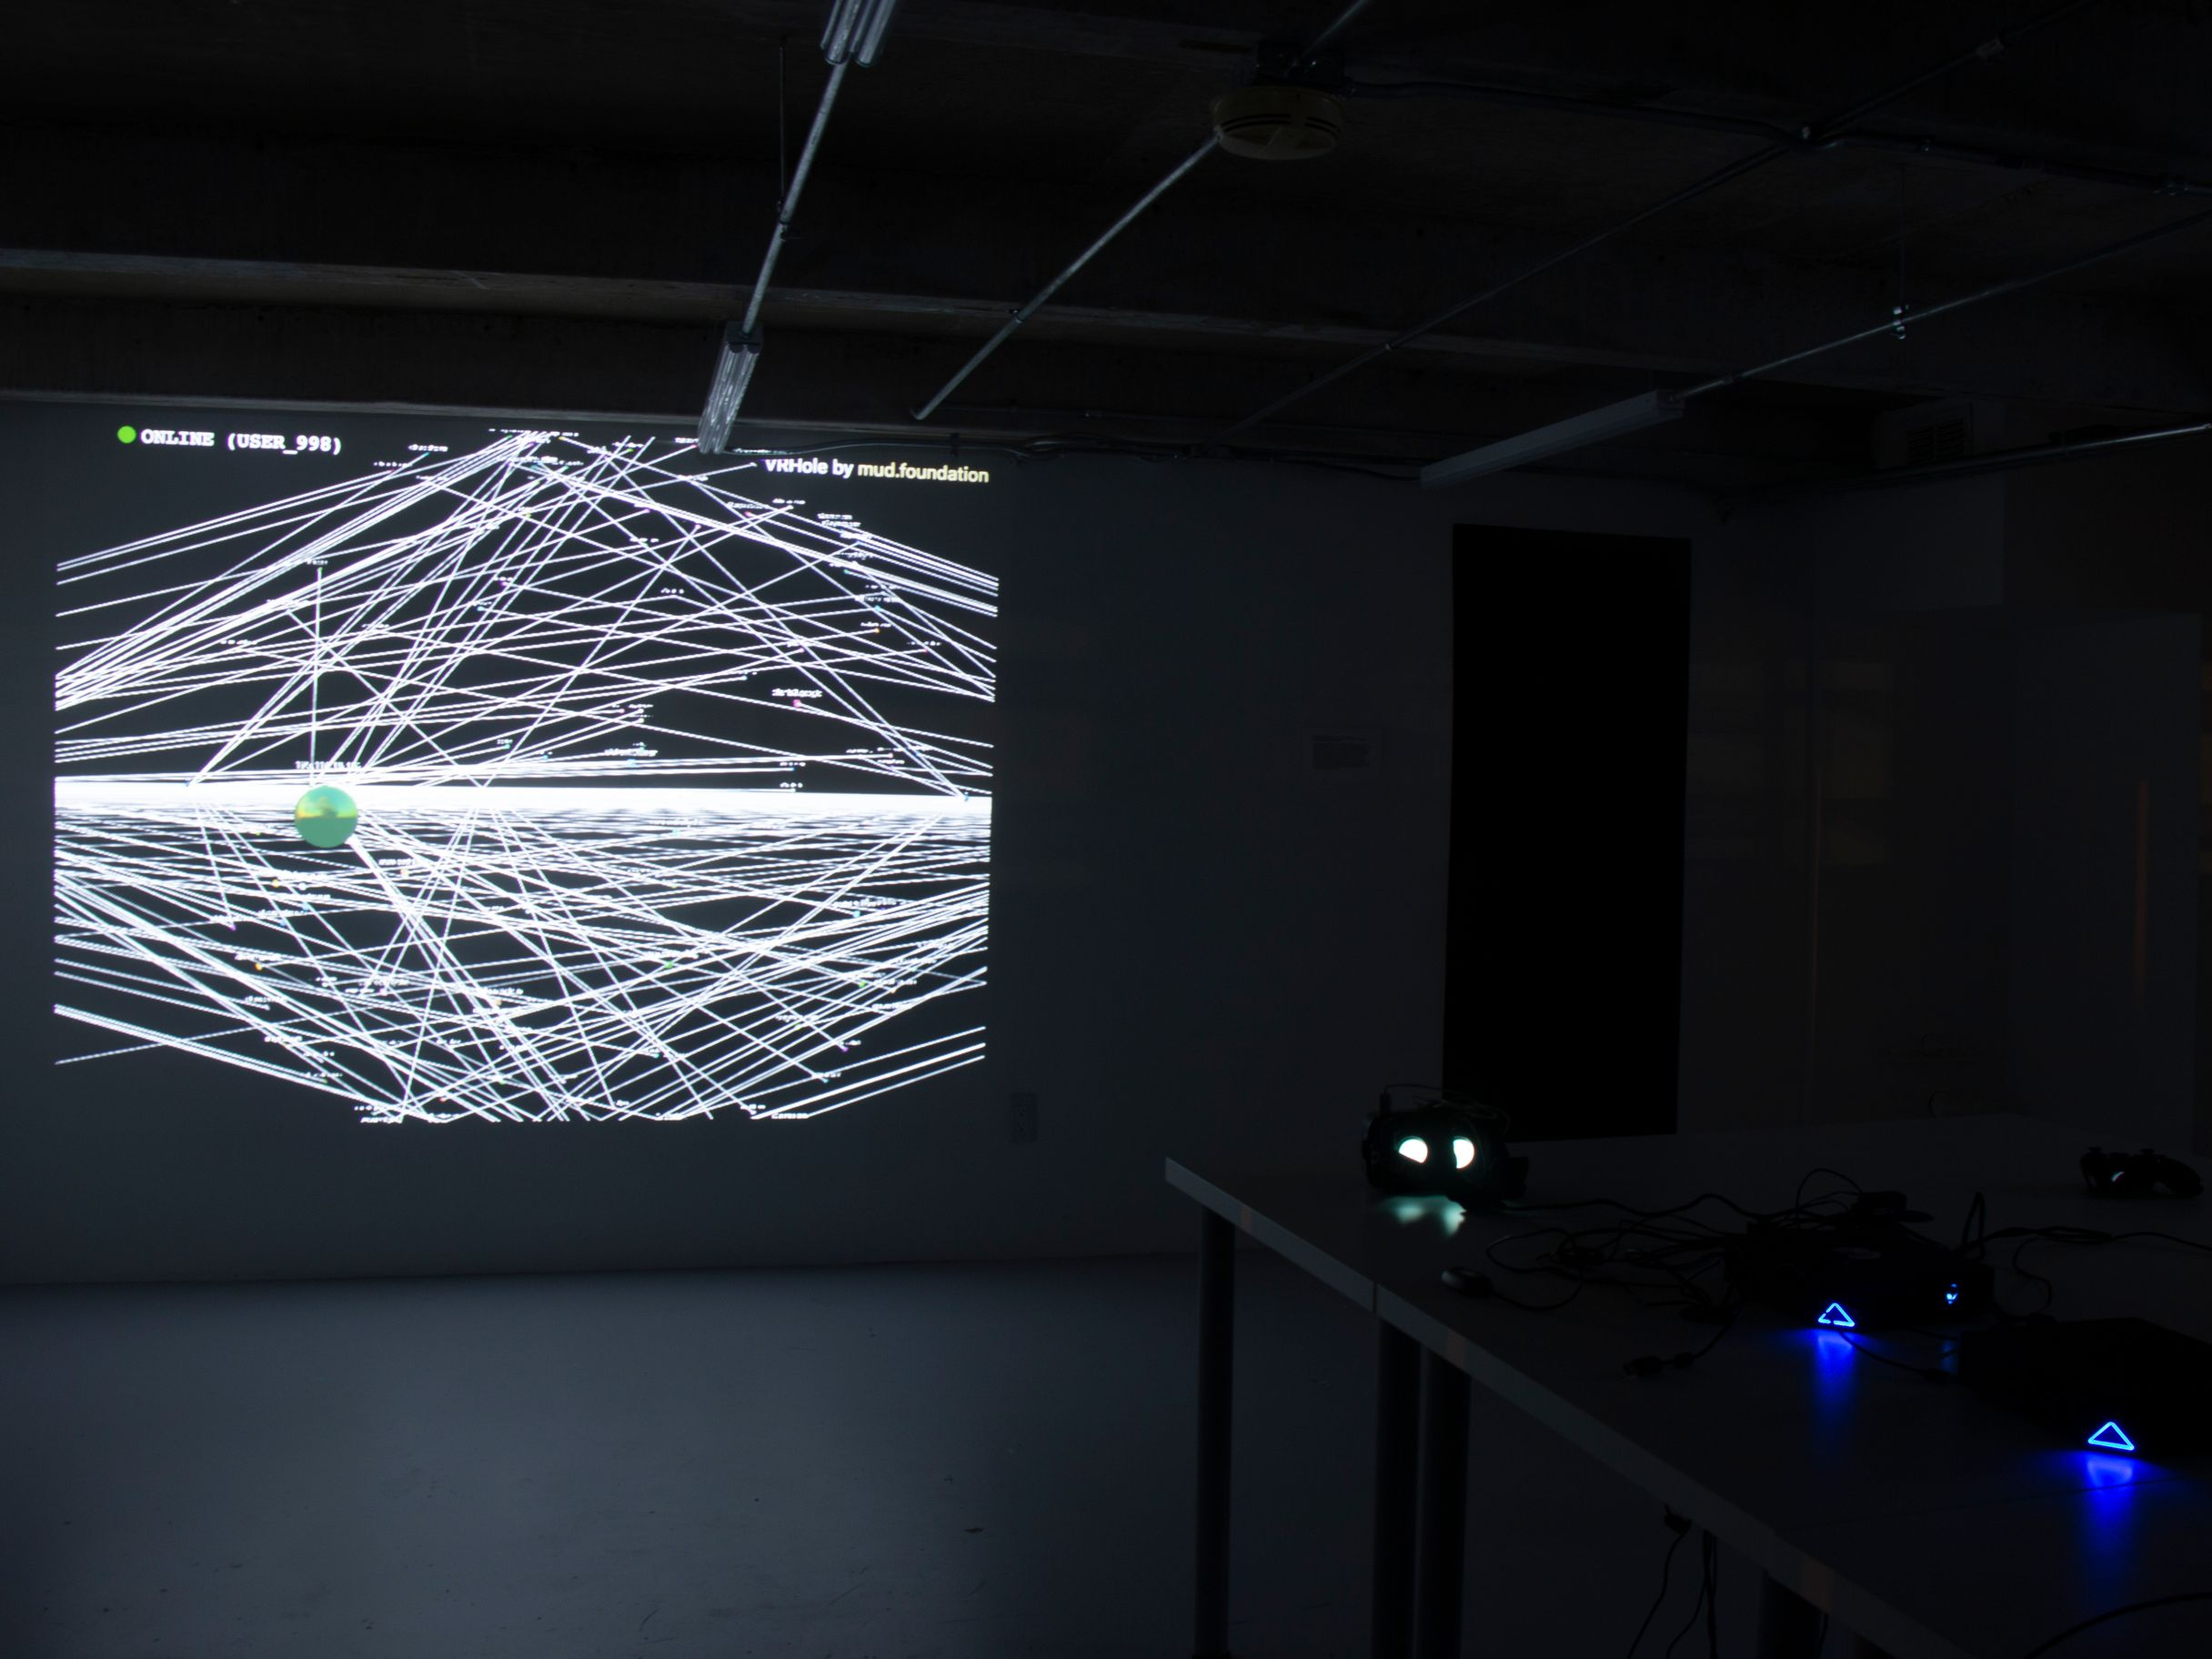 A dark rectangular room illuminated by a projection of intersecting white lines. A table to the right of the projection has VR glasses that glow white and blue.